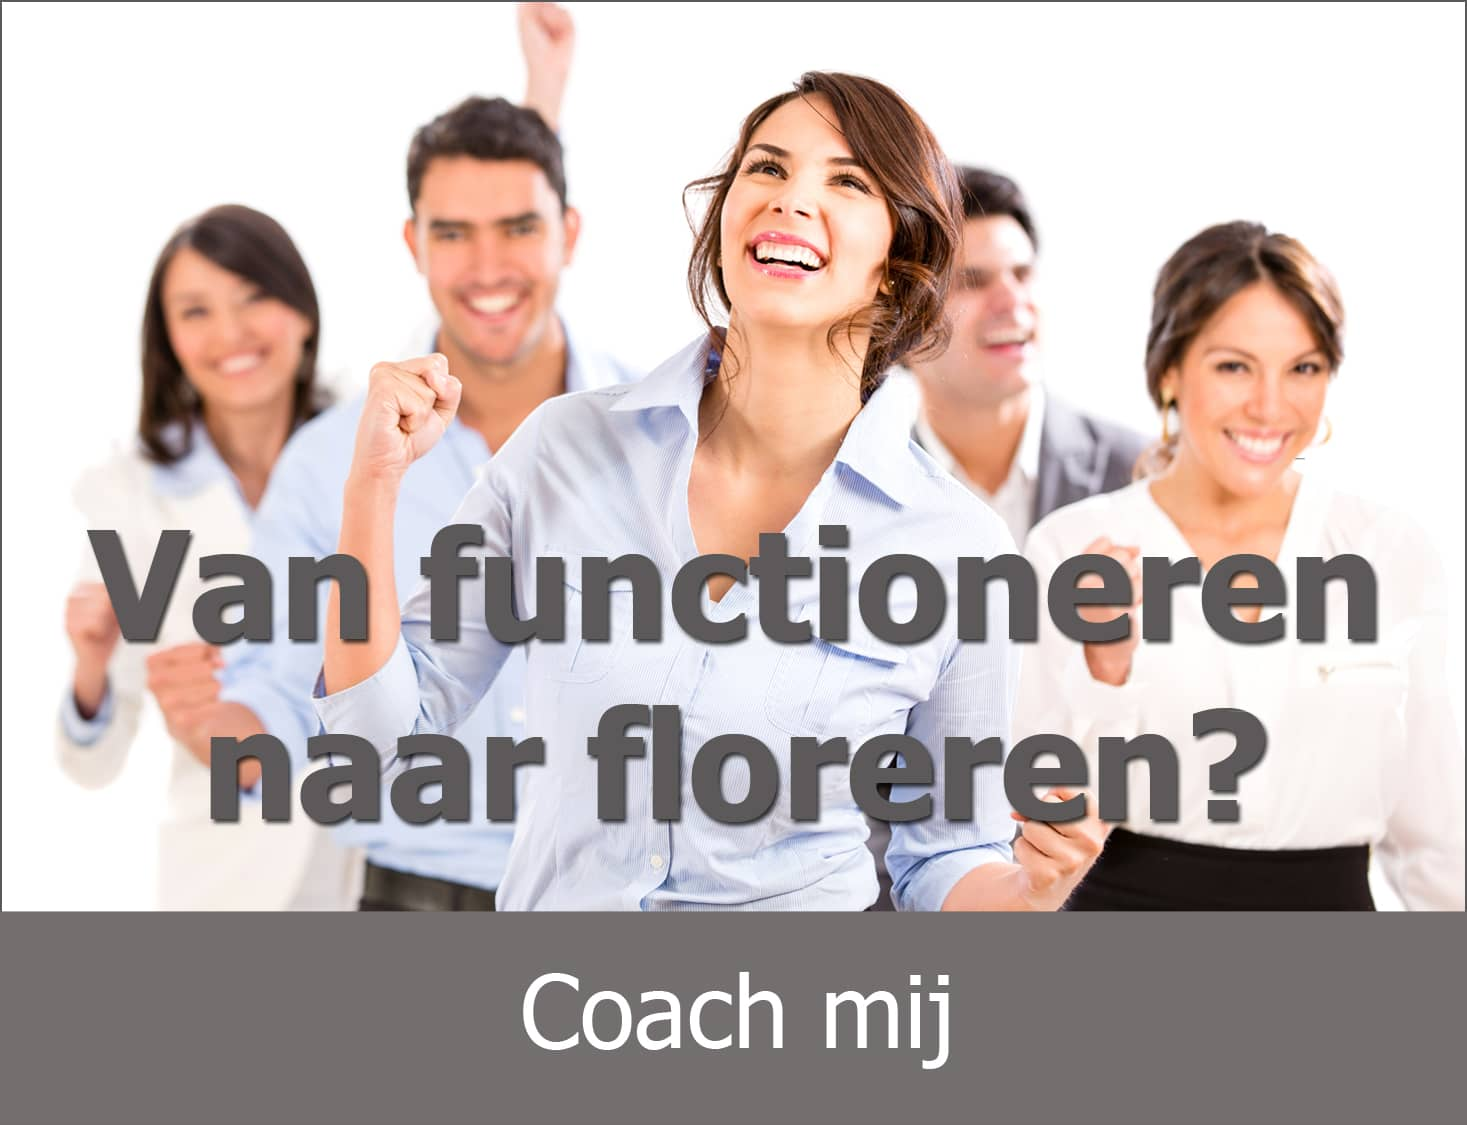 coach, personal coach, life coach, positieve psychologie, team coach, team coaching, teamcoach